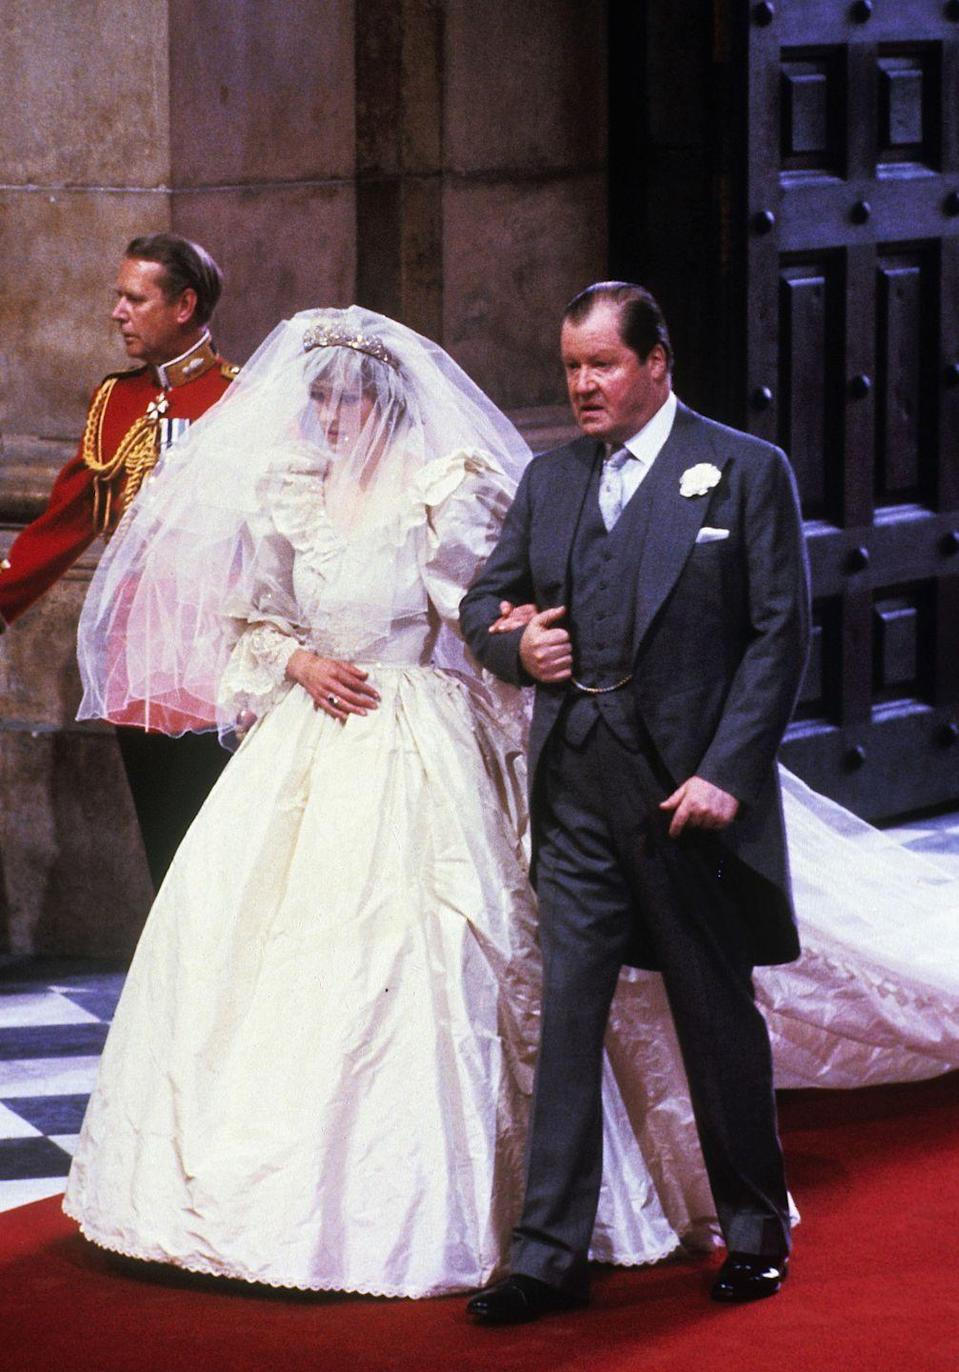 <p>Diana and her father make their way to the altar. Can you imagine how wild their nerves must have been at this moment? P.S. Take a closer at the Spencer Tiara—yep, she wore her own family jewels for her big day.</p>